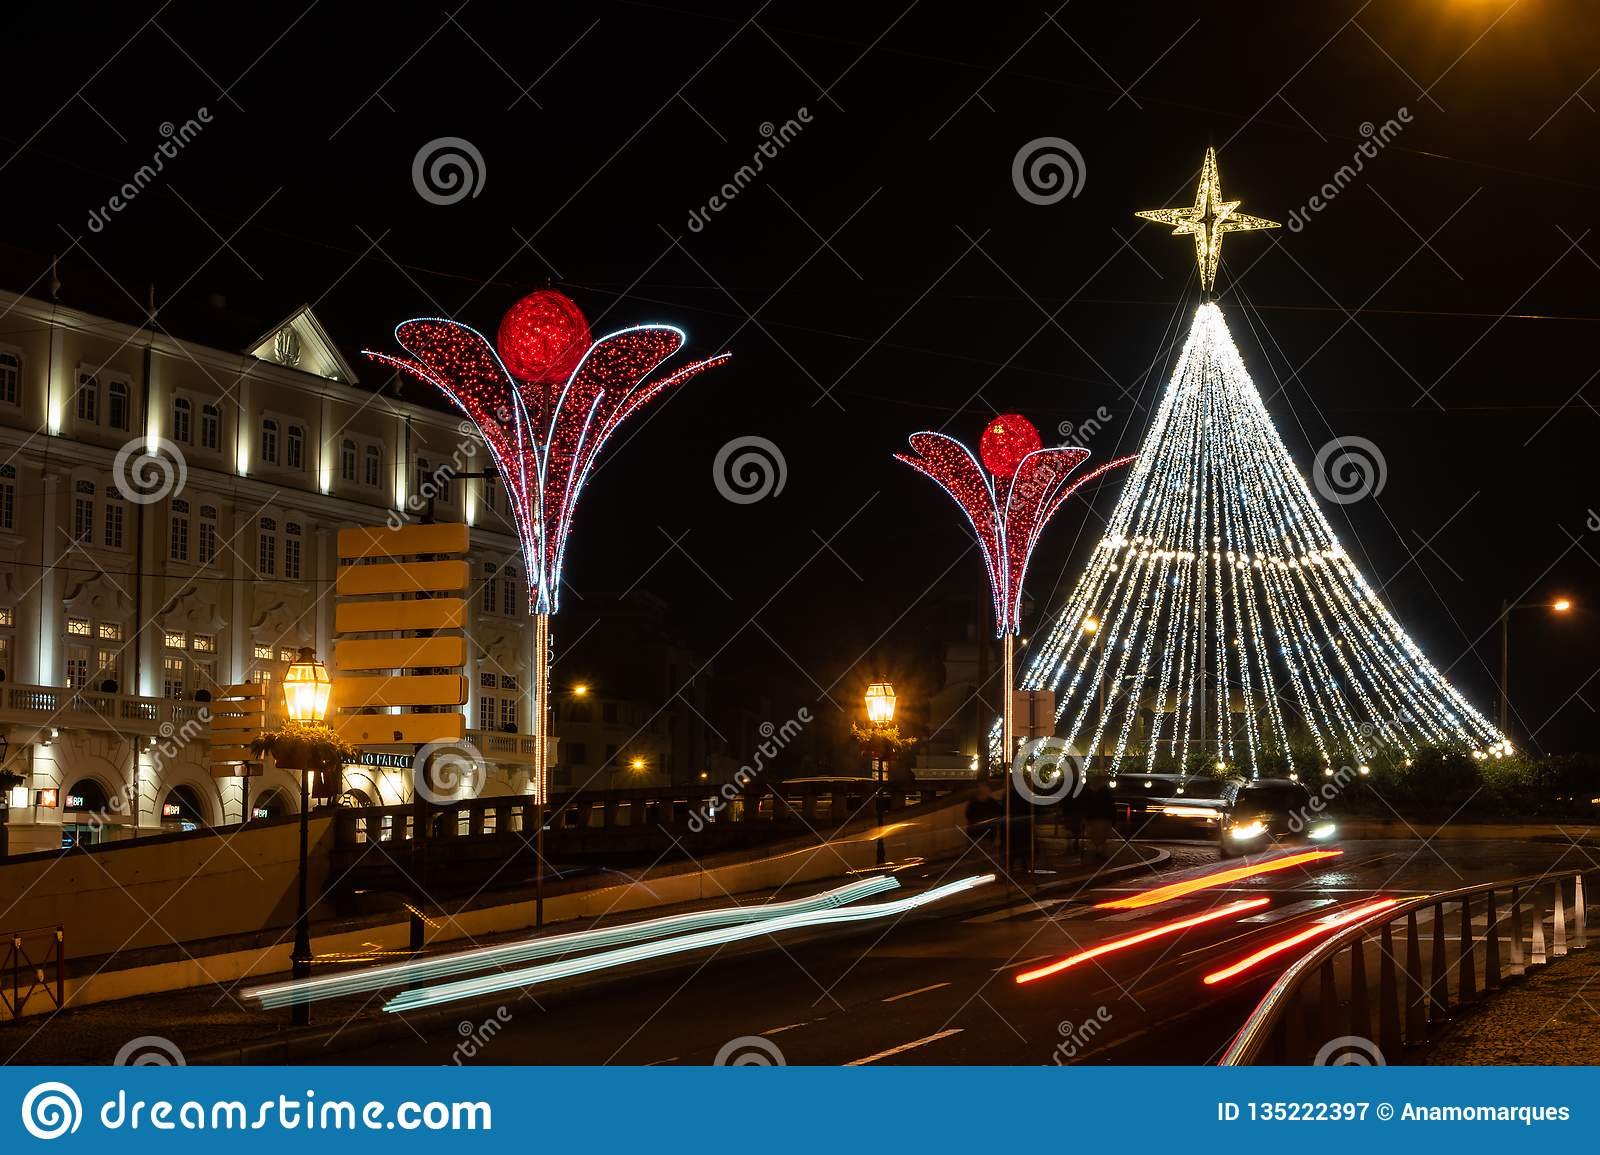 Christmas Boat Decorations.Christmas Tree And Decorations Near The Ria De Aveiro With